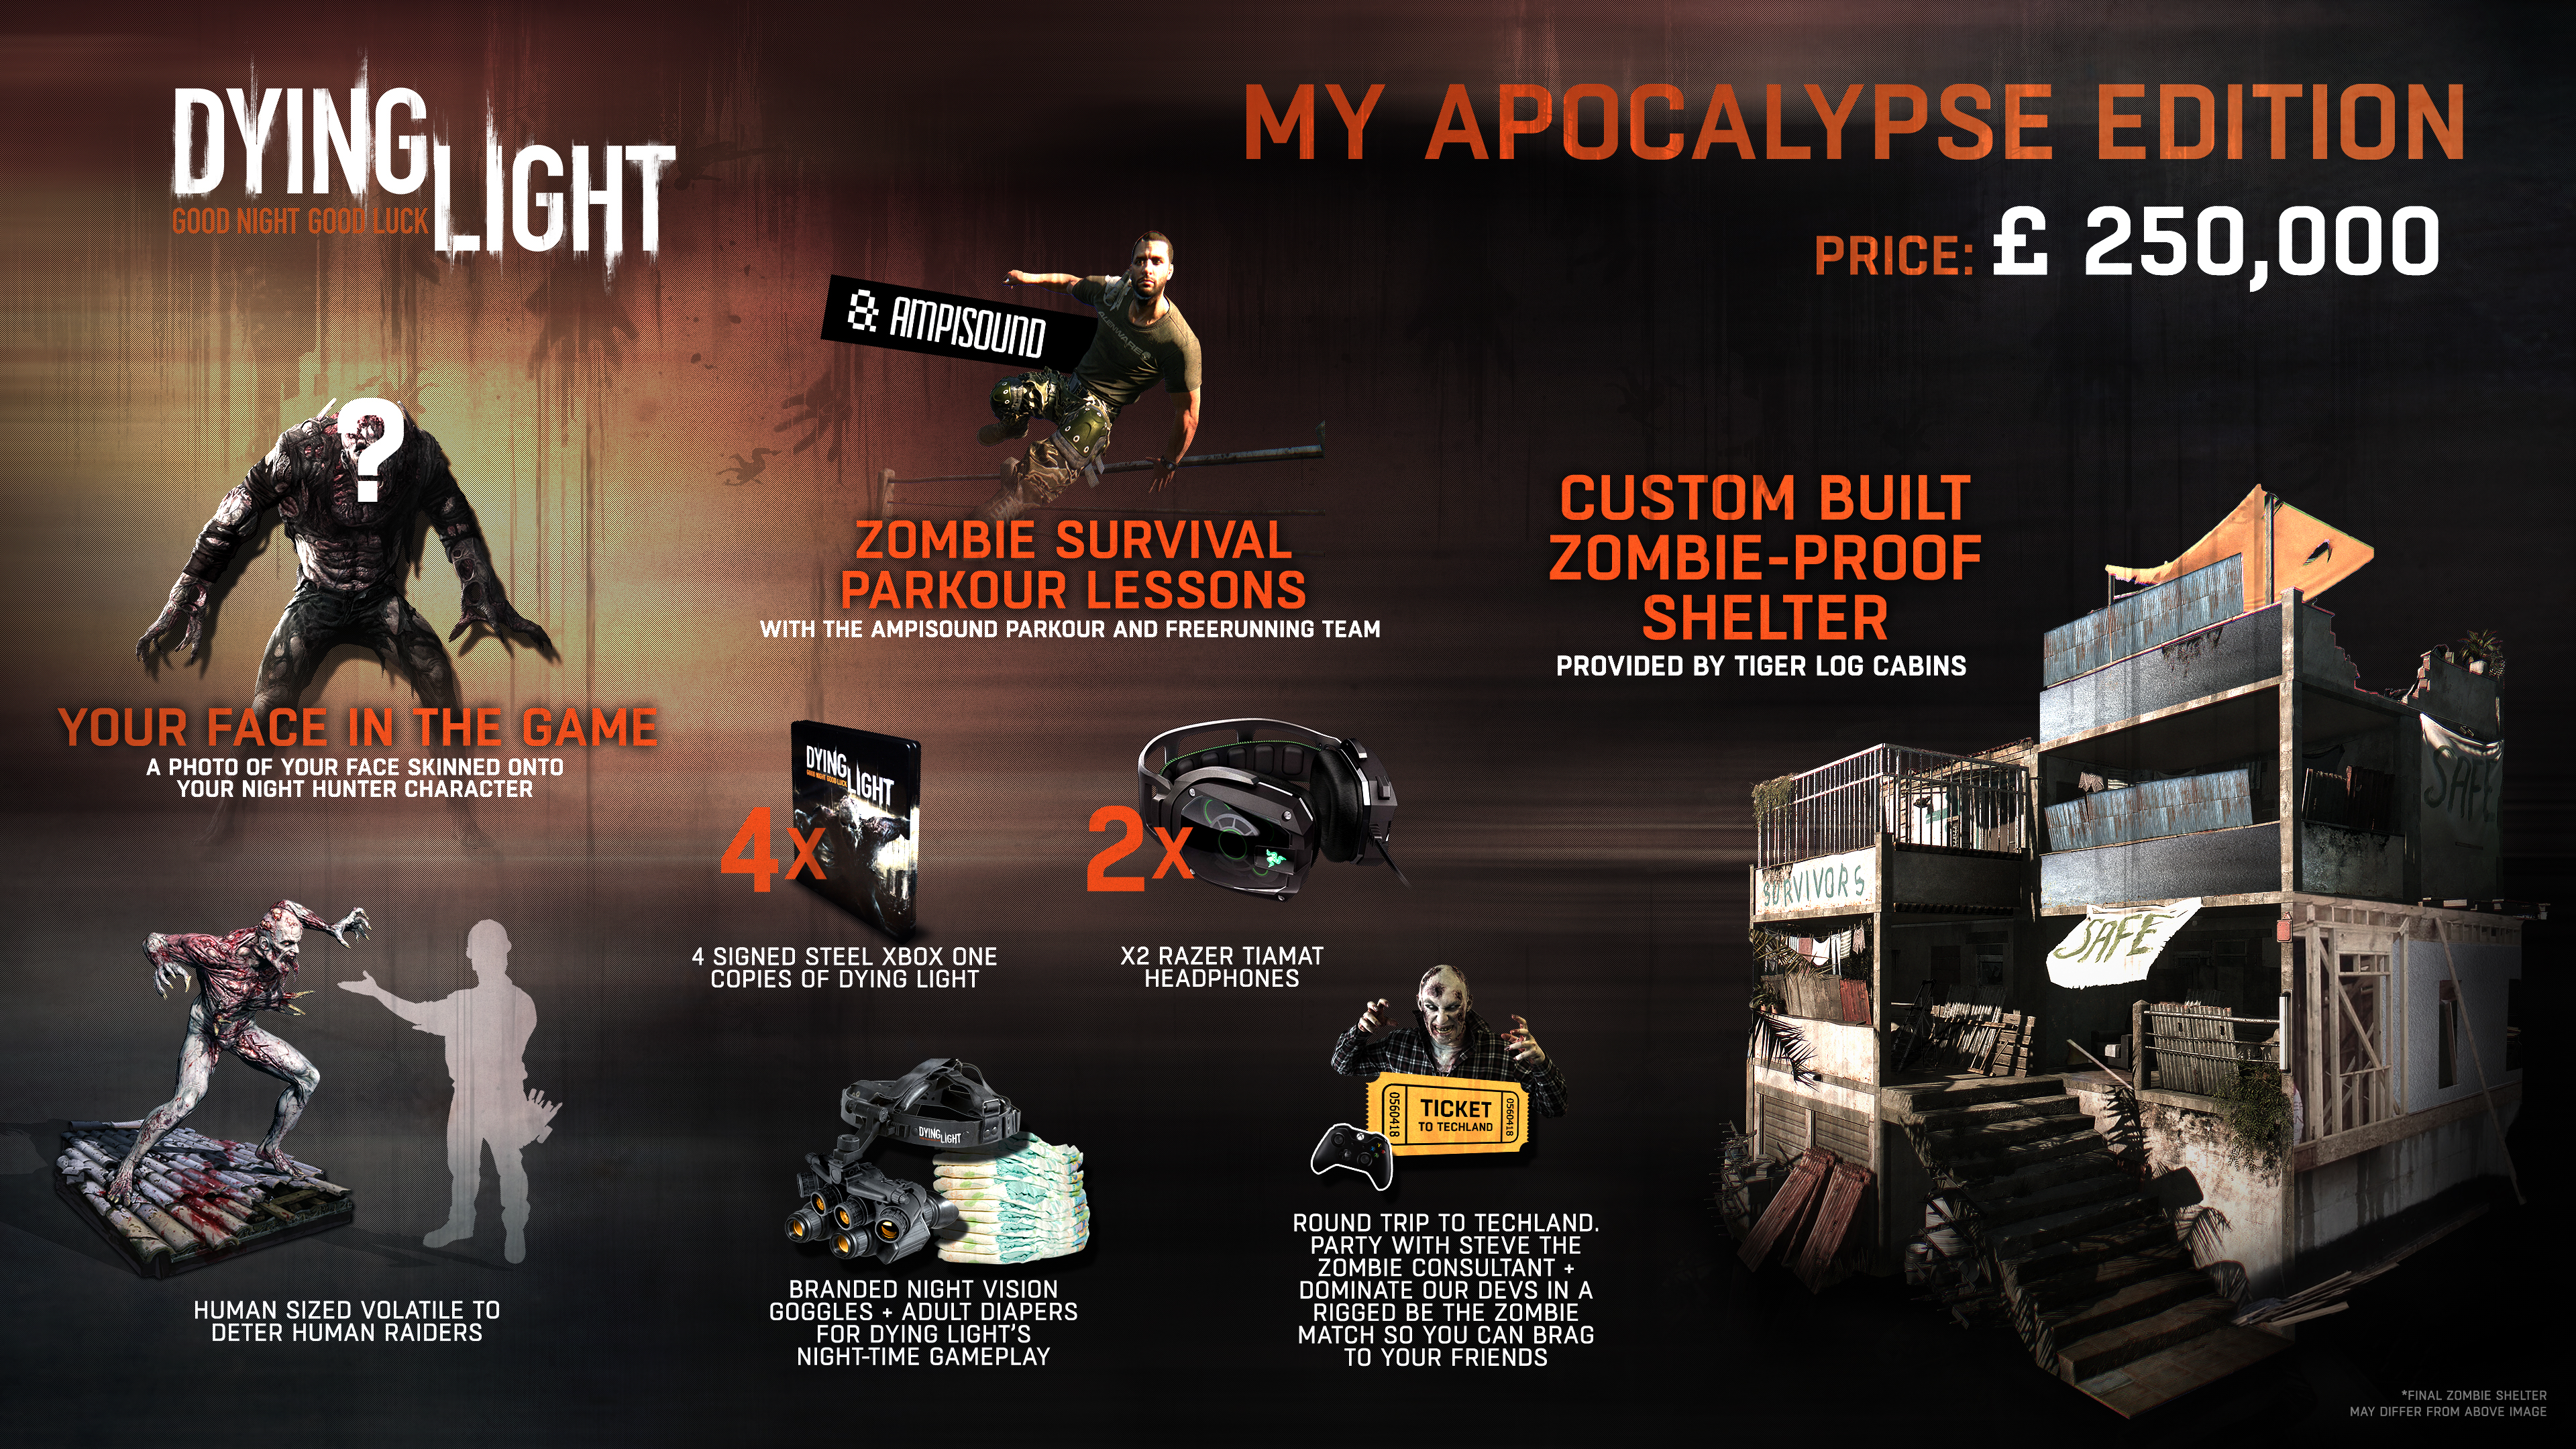 Dying Light special edition costs $387,000